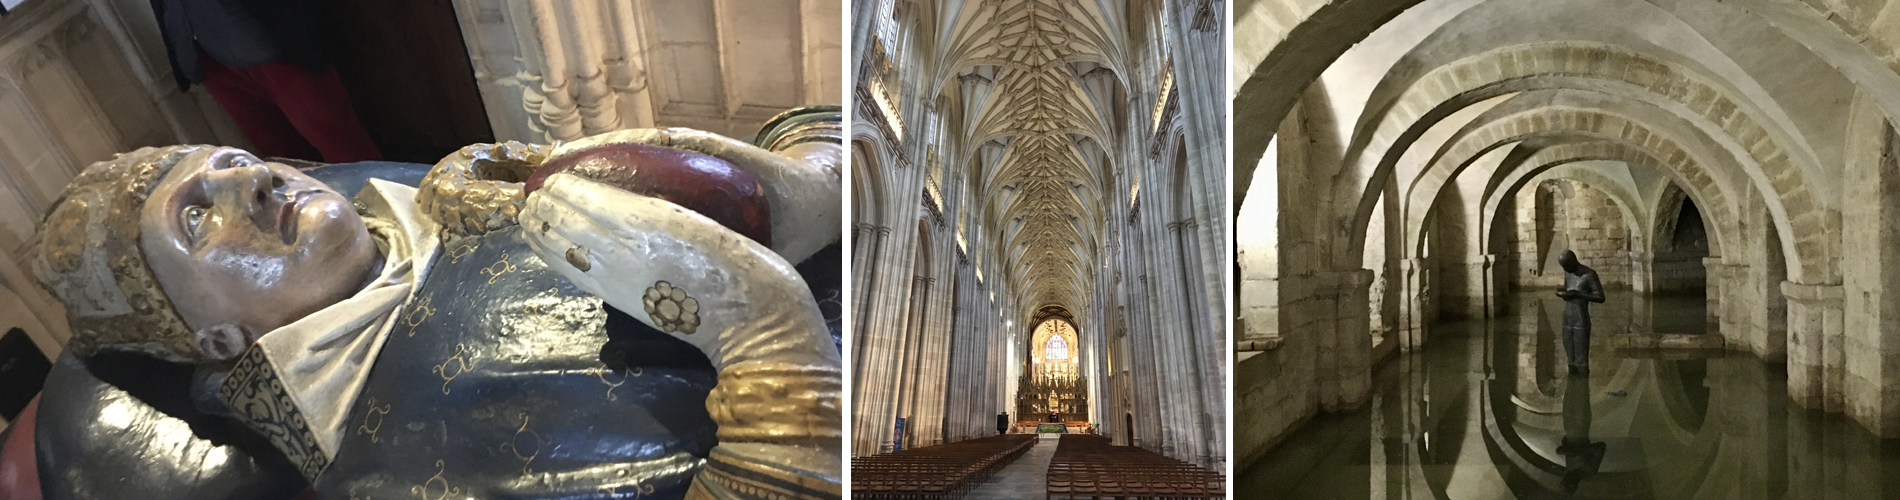 Cathedral Waynflete Chantry (L); Centre: Cathedral Nave (C); Right: Cathedral Crypt (R) (statue in water)